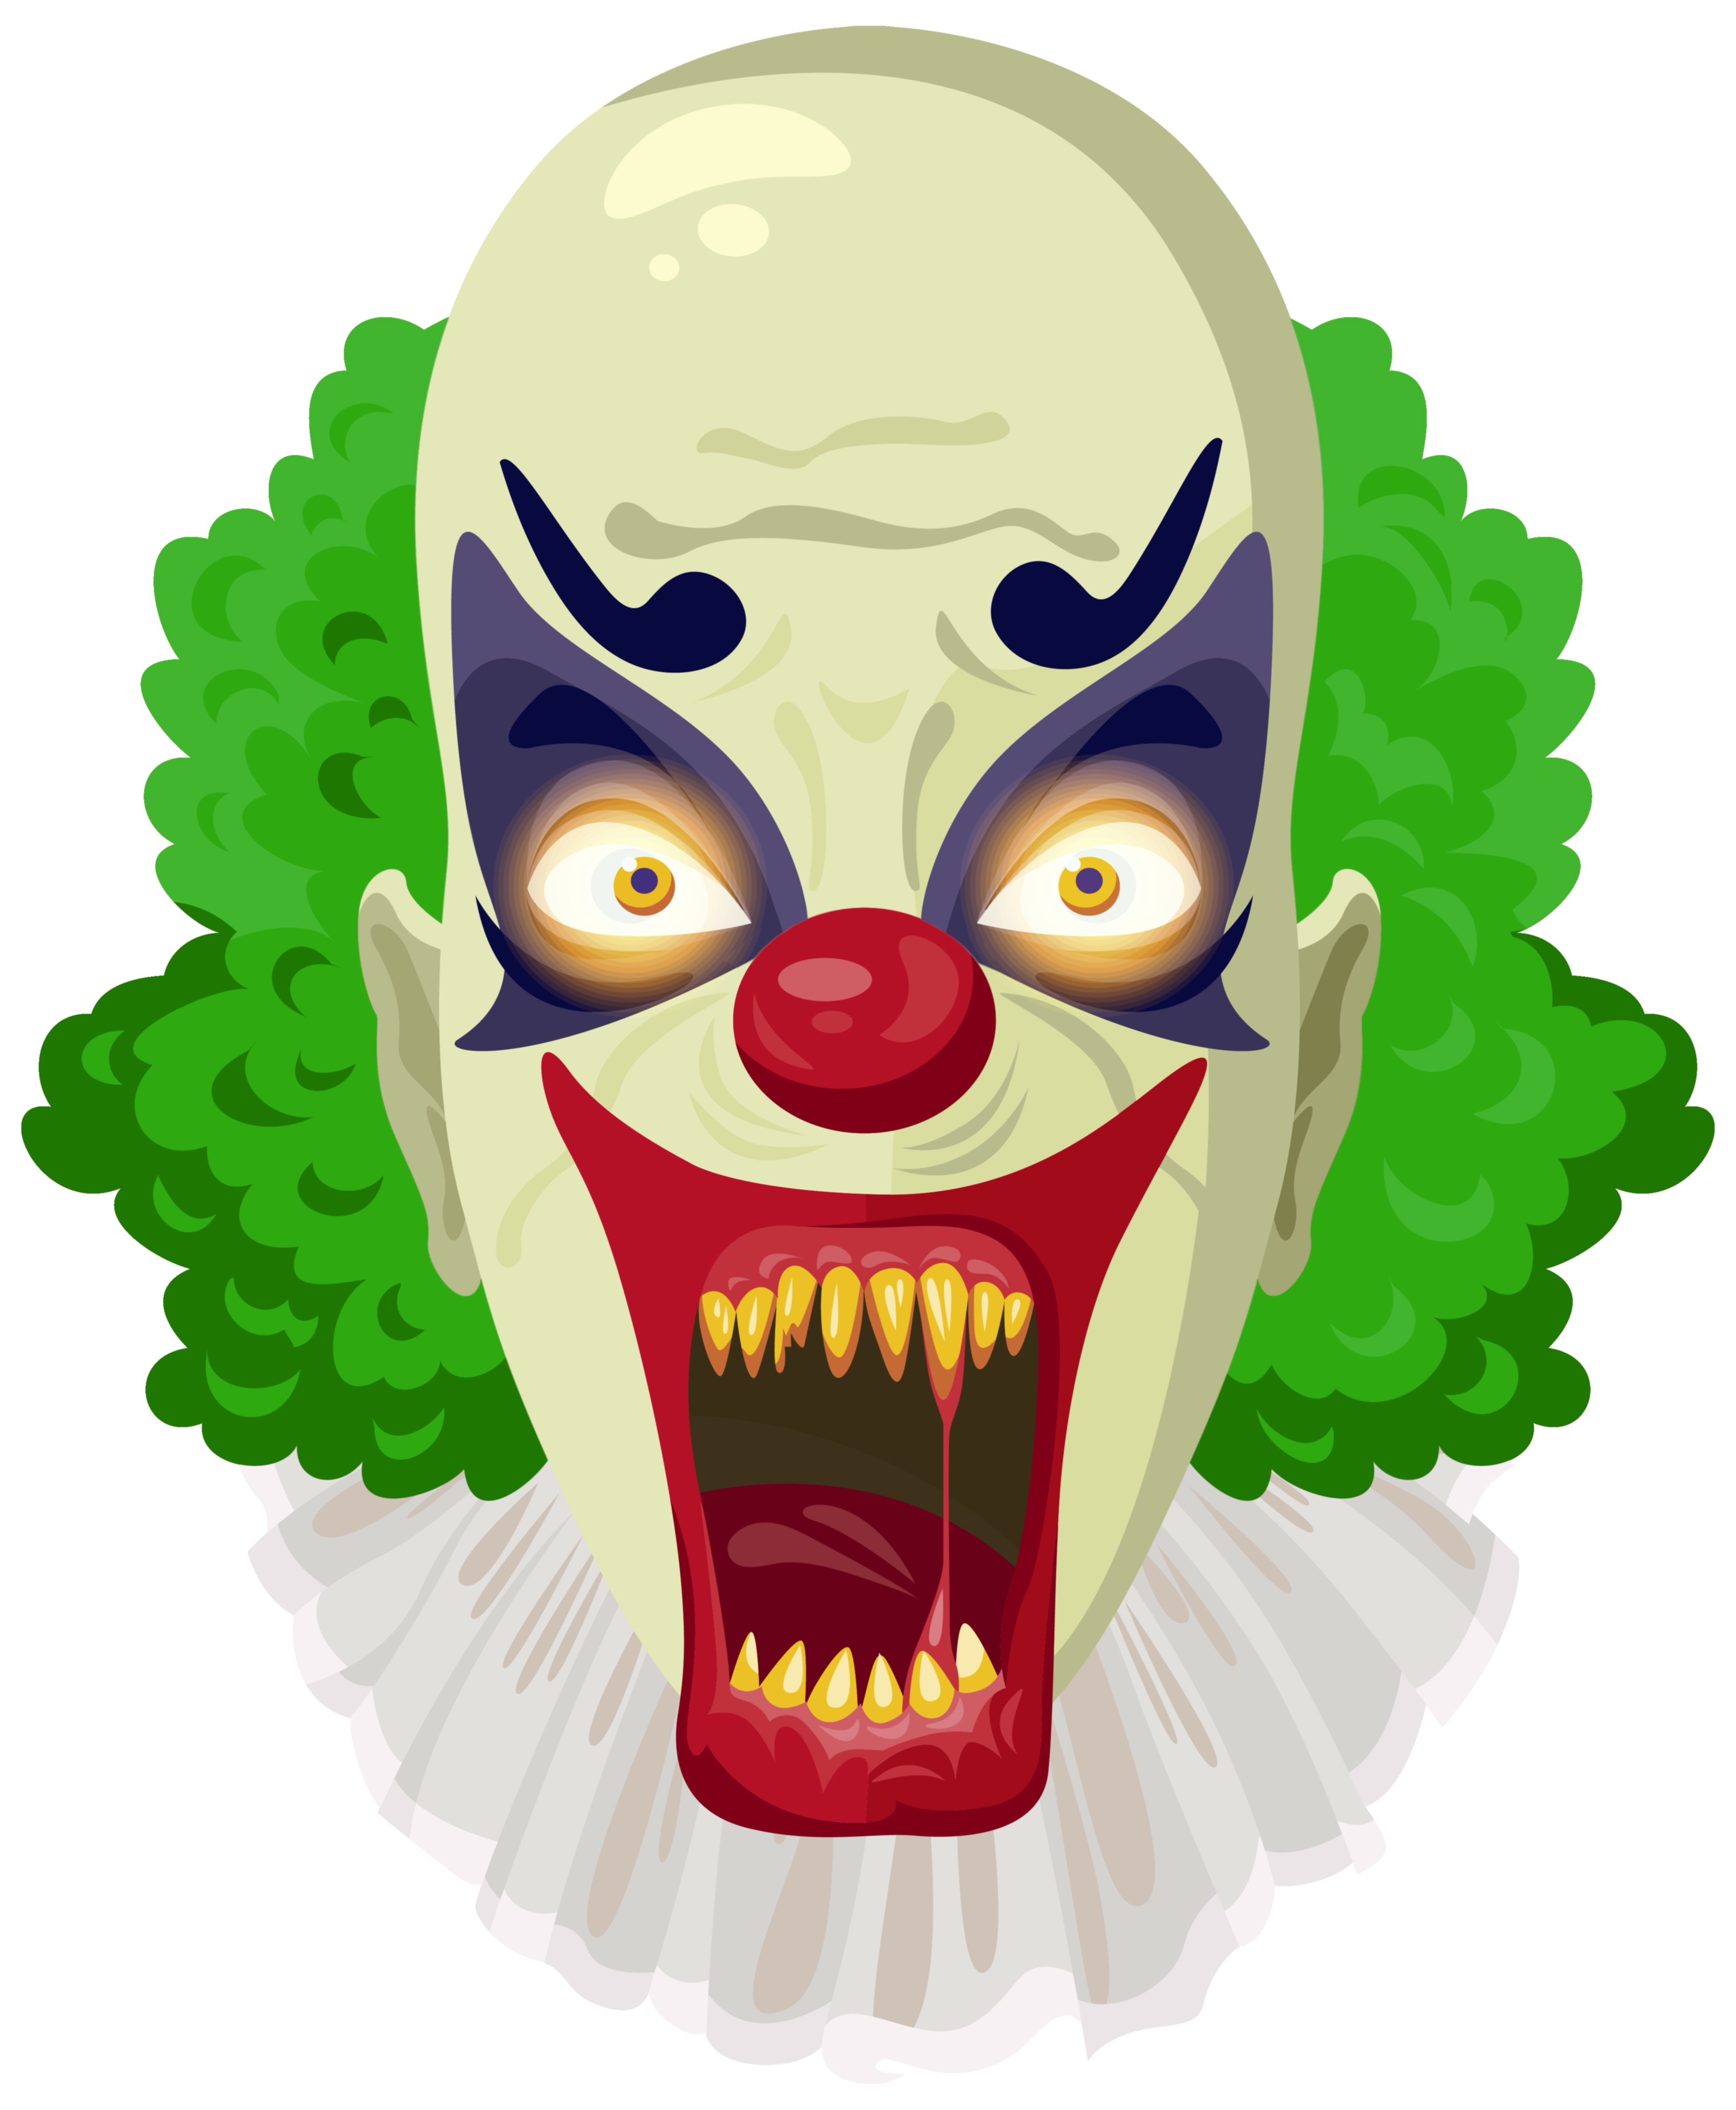 Halloween green clipart clipart royalty free stock Scary Clown Green PNG Clipart Image | Gallery Yopriceville - High ... clipart royalty free stock